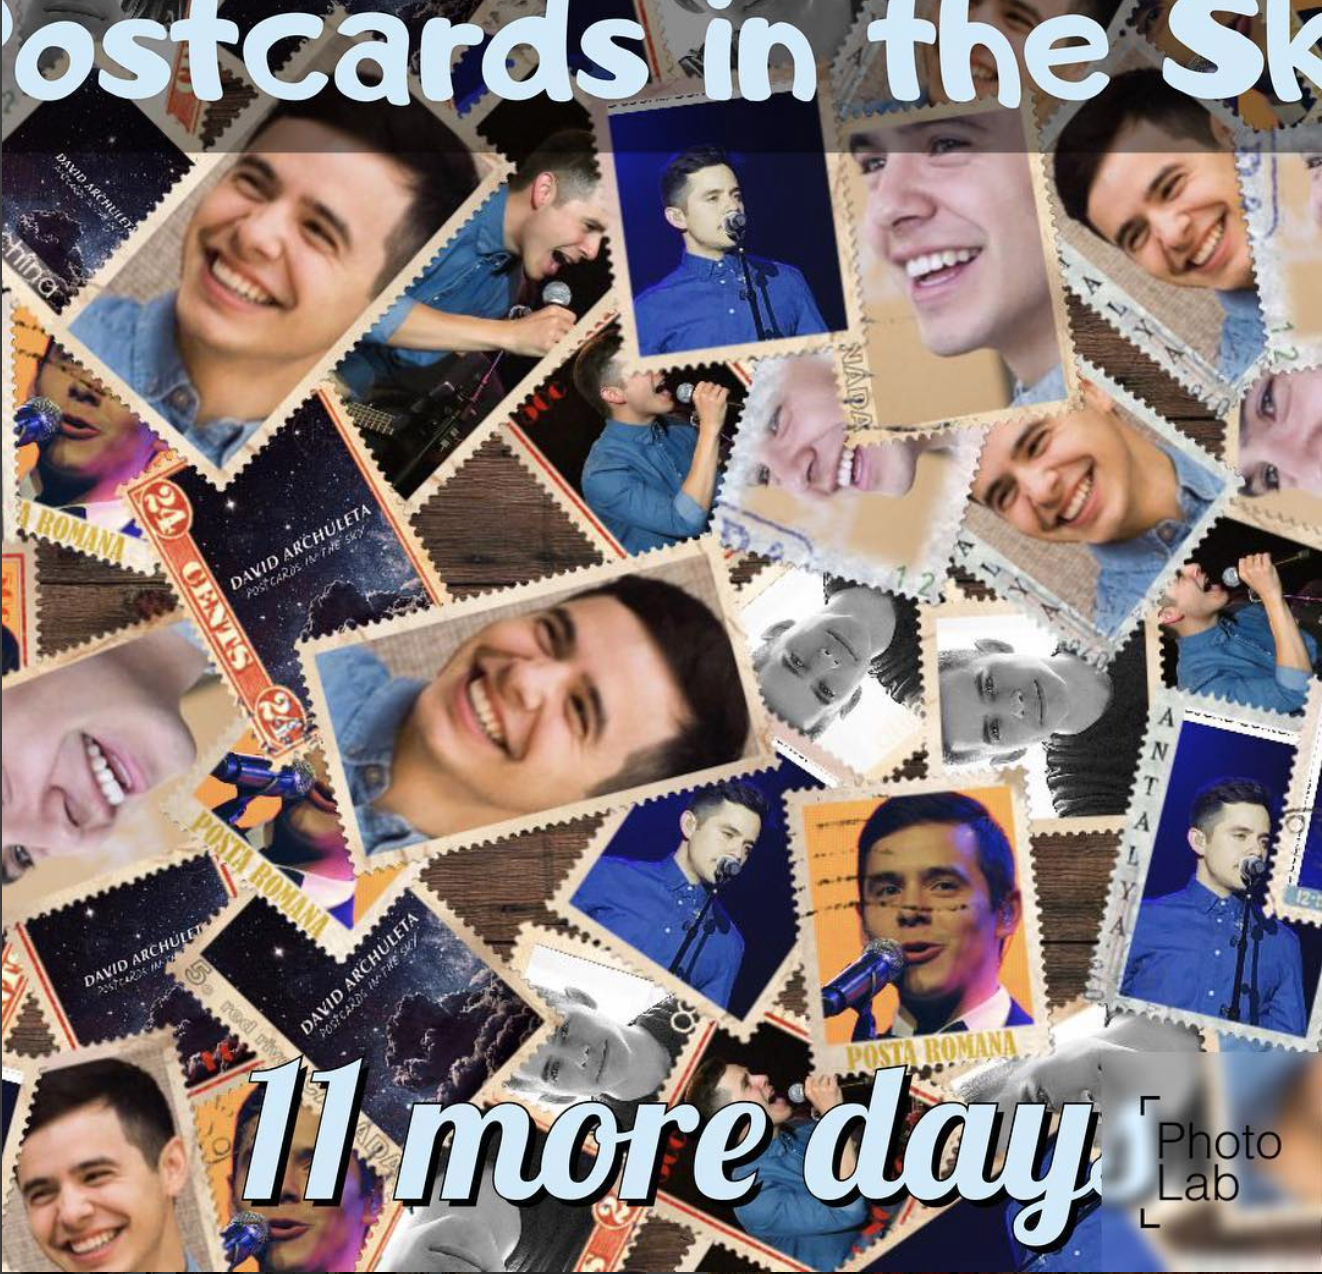 11 more days to postcards in the sky credit Gwen